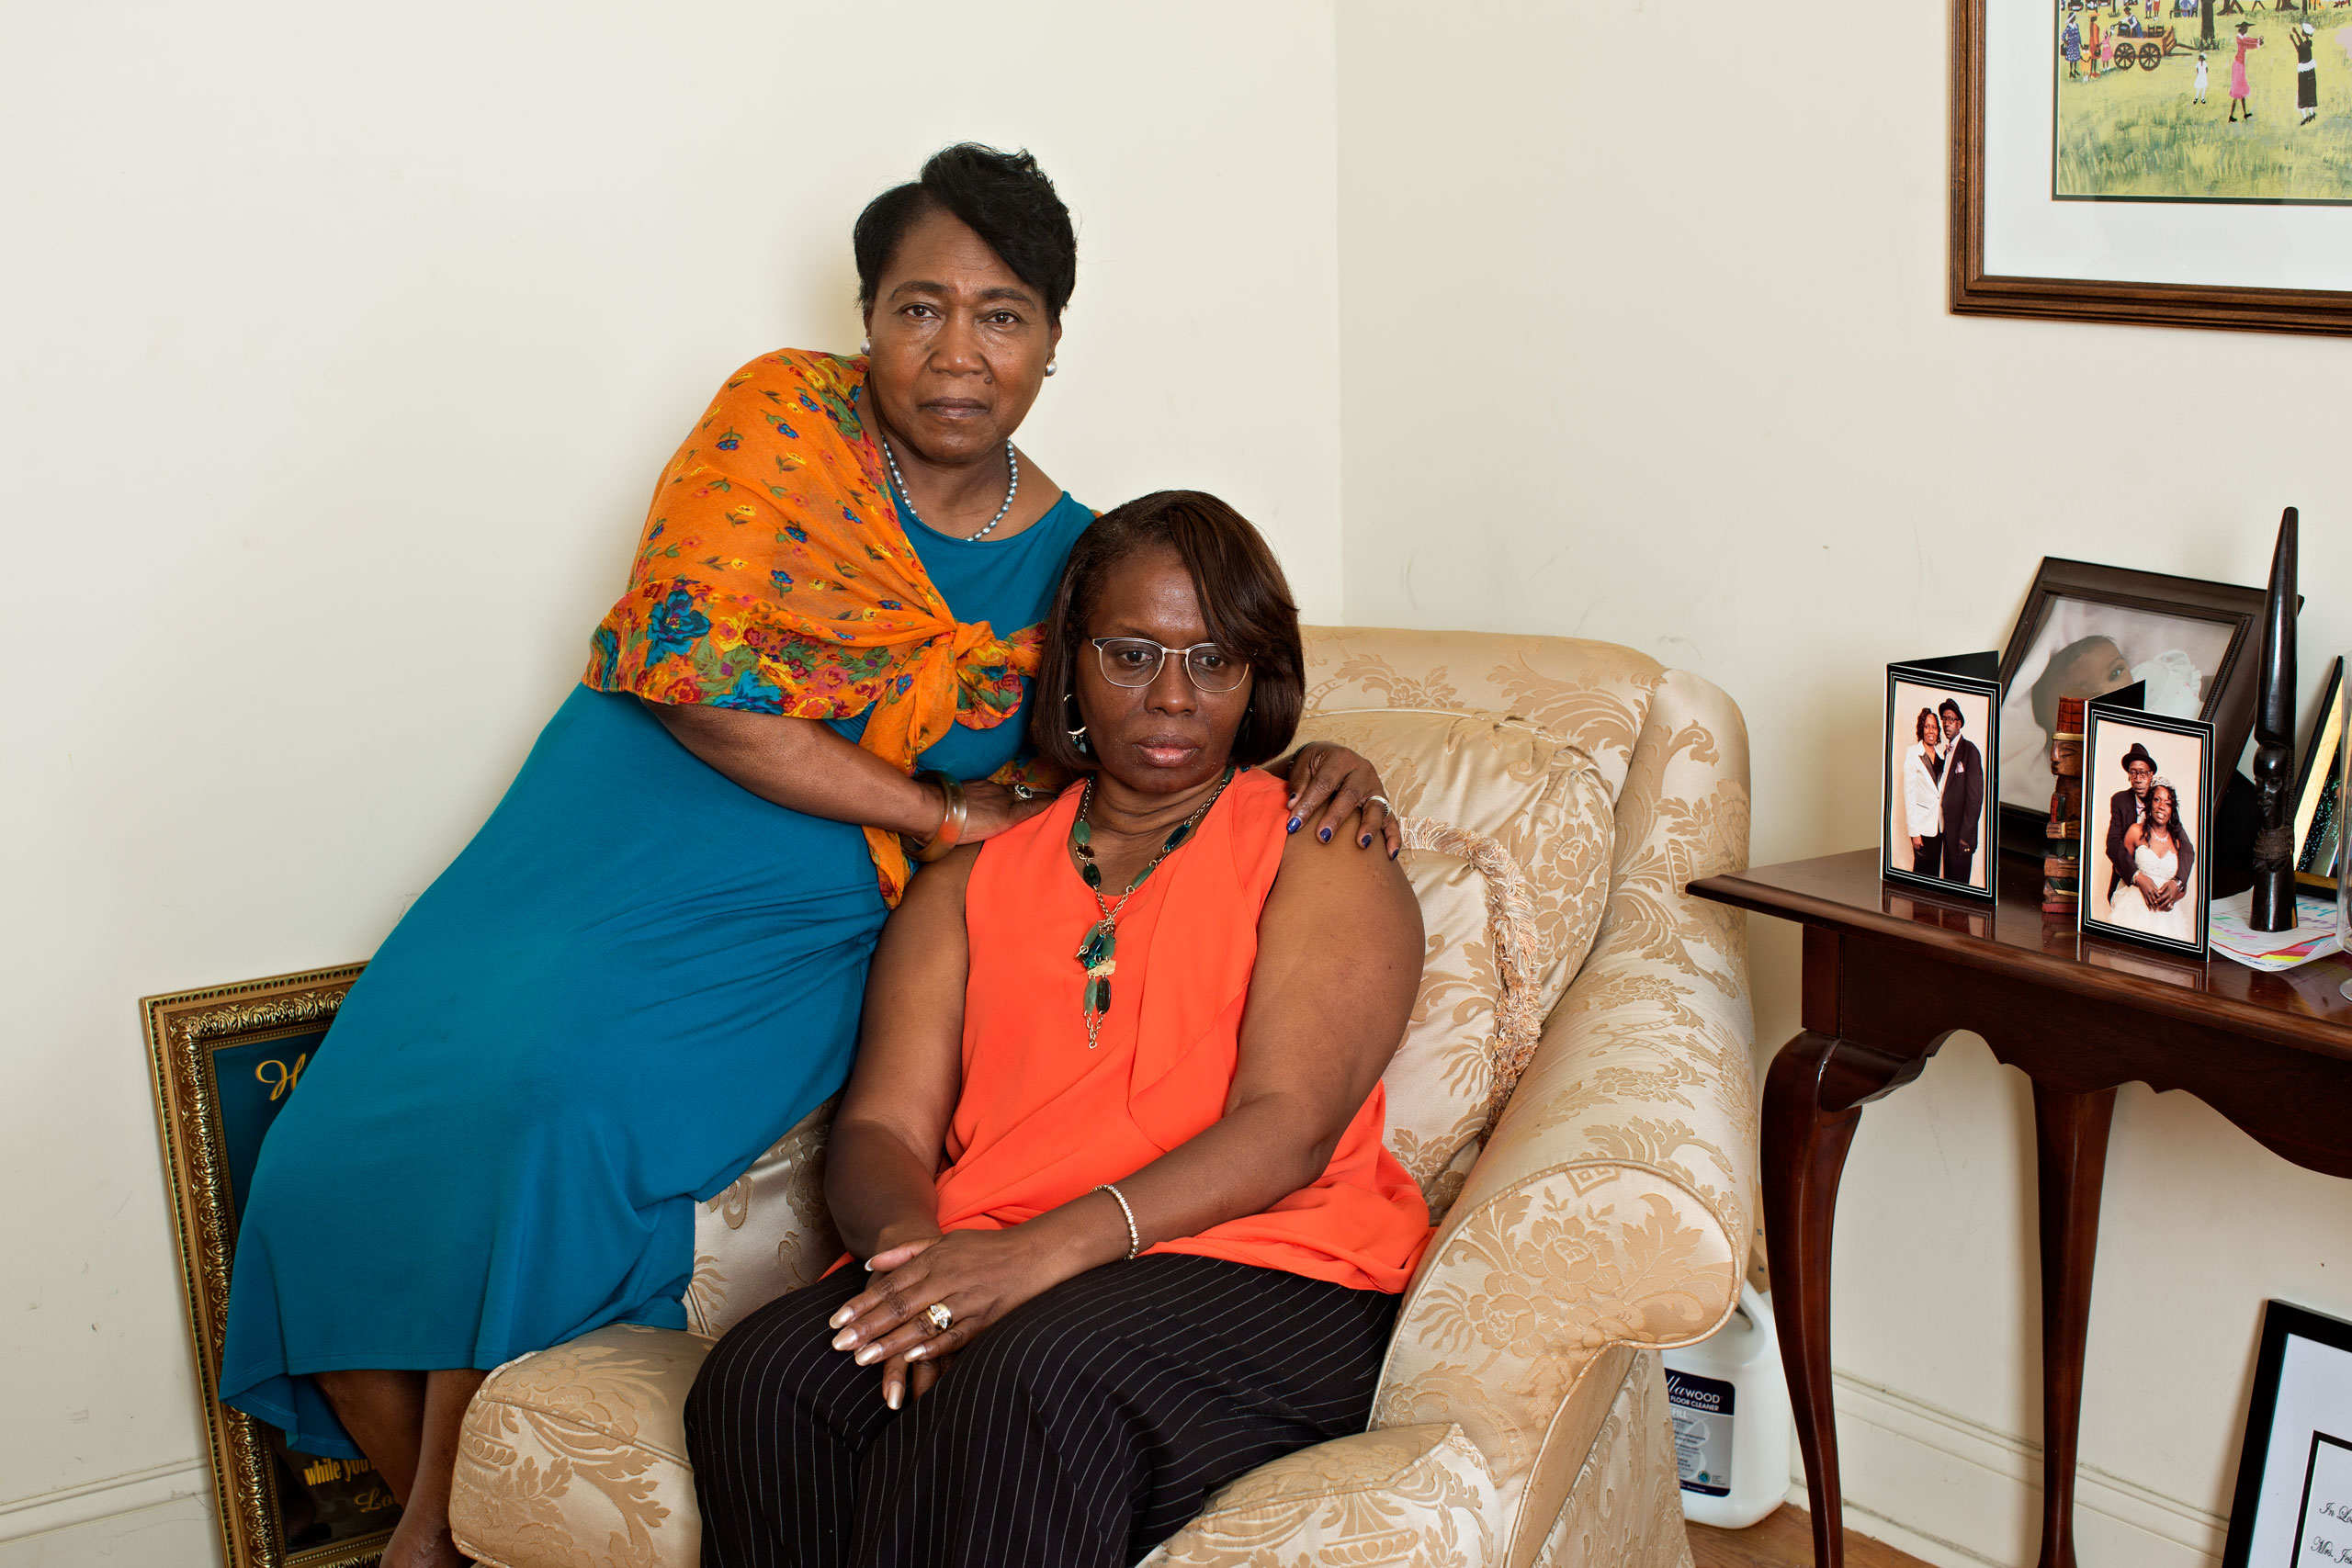 Polly Sheppard, left, and Felicia Sanders. The longtime friends, seen at Sanders' Charleston home, both survived the massacre. The killer spared Sheppard at gunpoint so she would tell what happened.